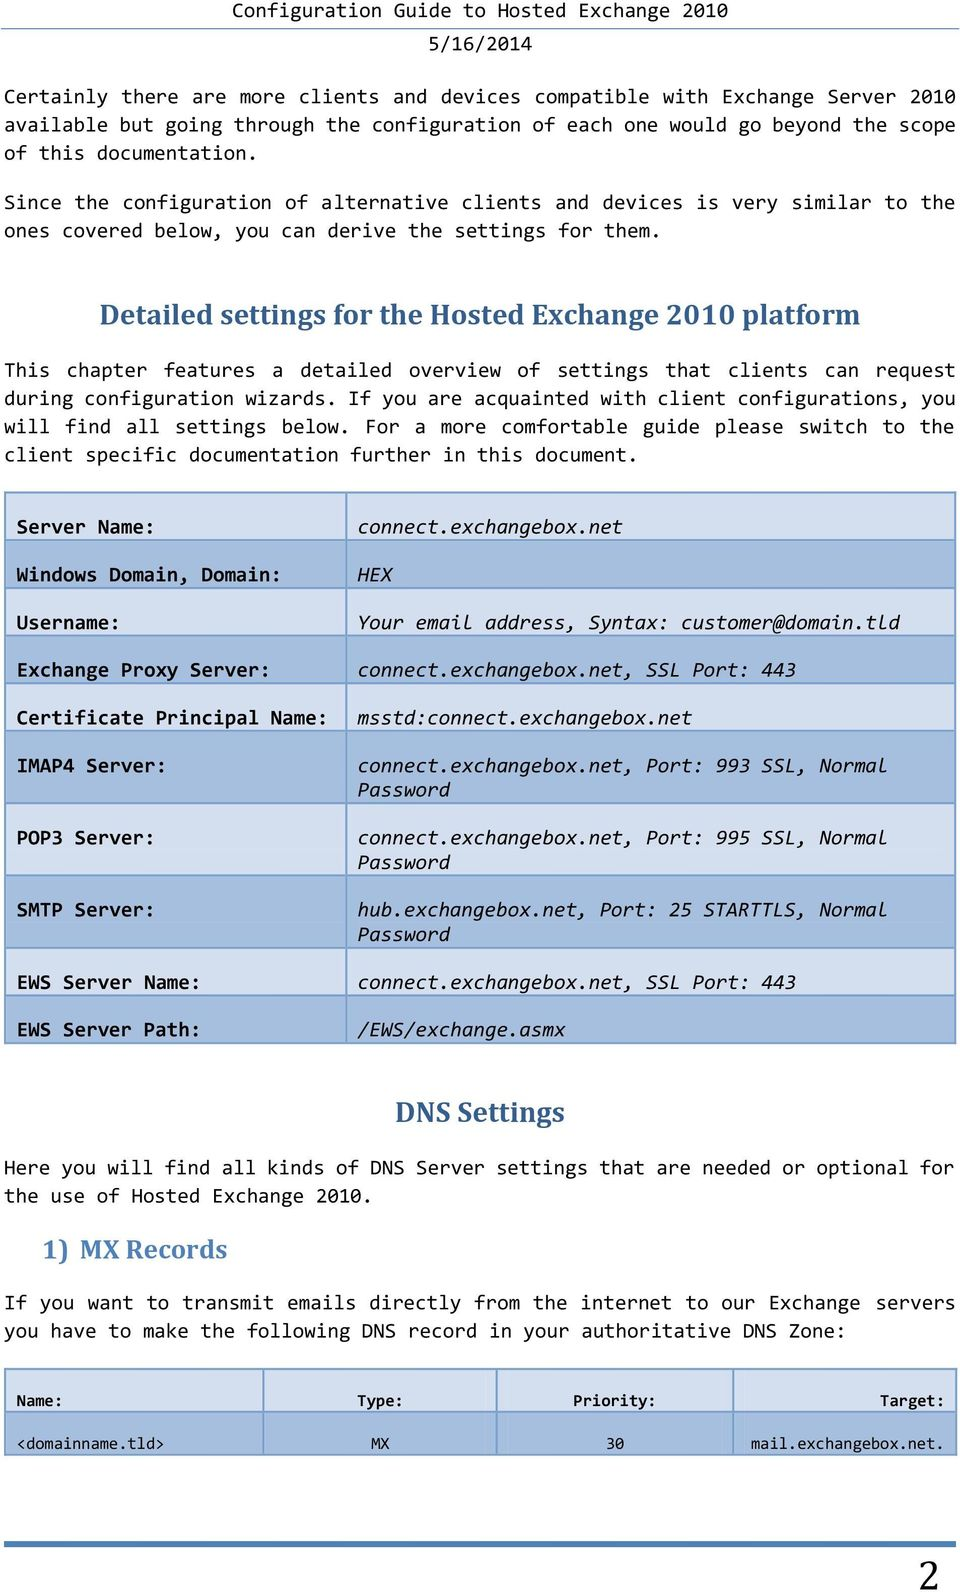 Configuration Guide to Hosted Exchange User Documentation